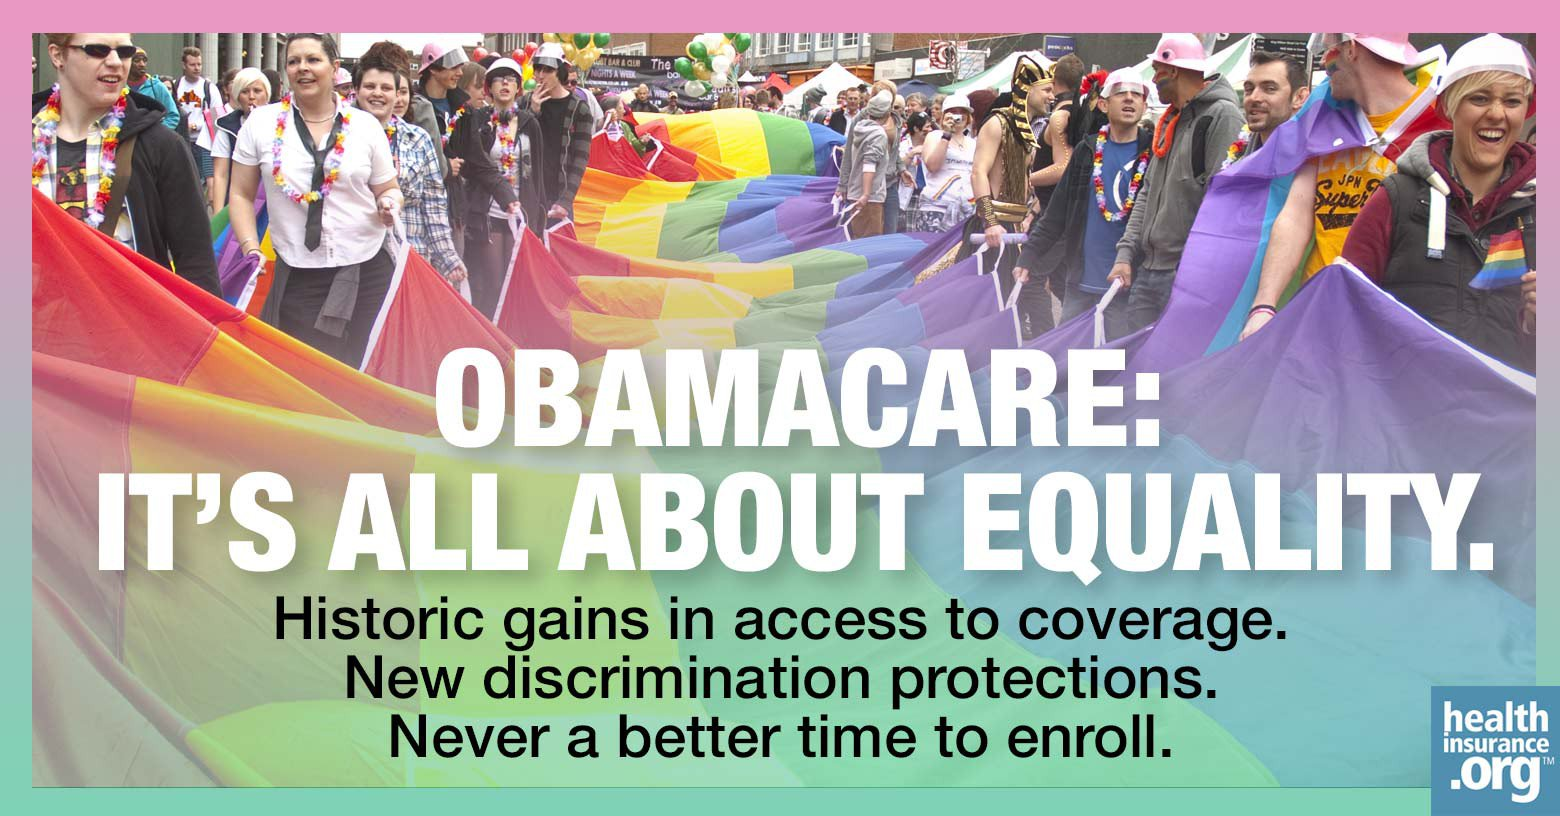 A4: Historic health care gains in the #LGBTQ community would be lost if the #ACA is repealed. #MillennialMon https://t.co/DMM4uiMWeK